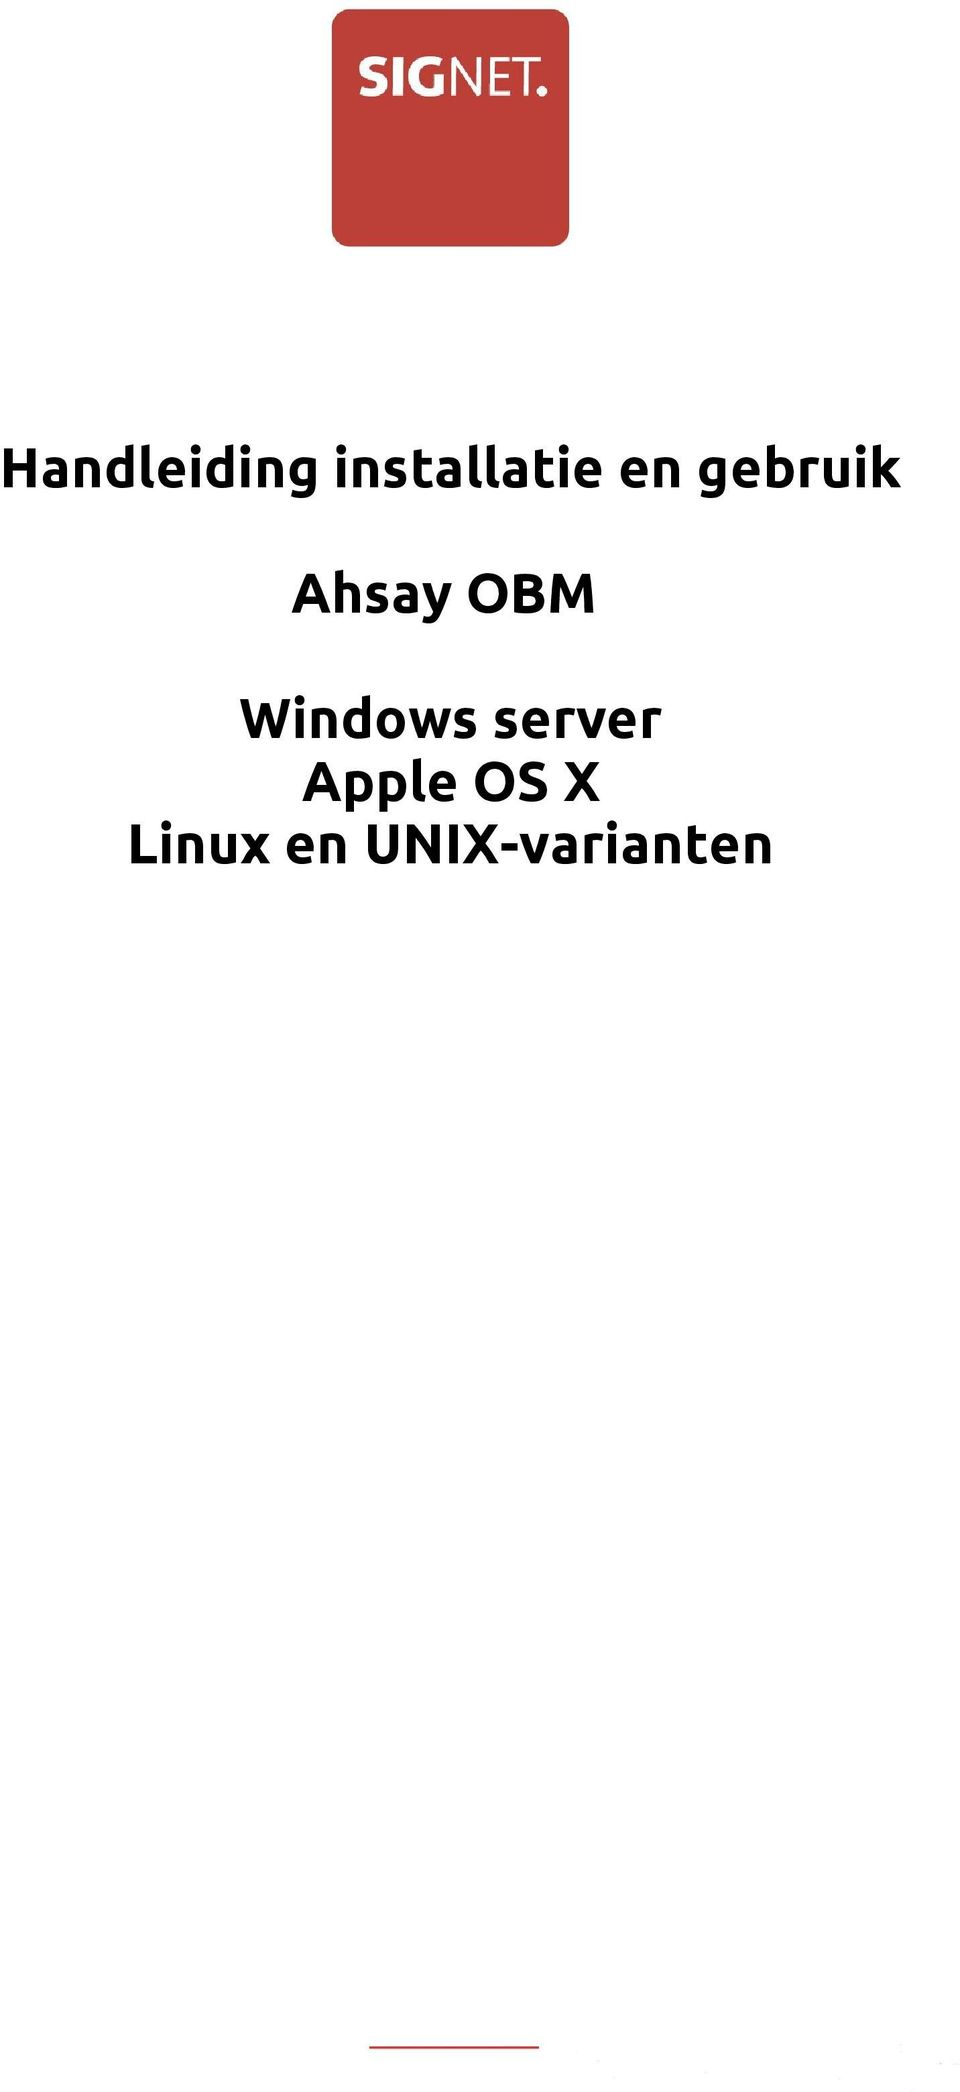 Windows server Apple OS